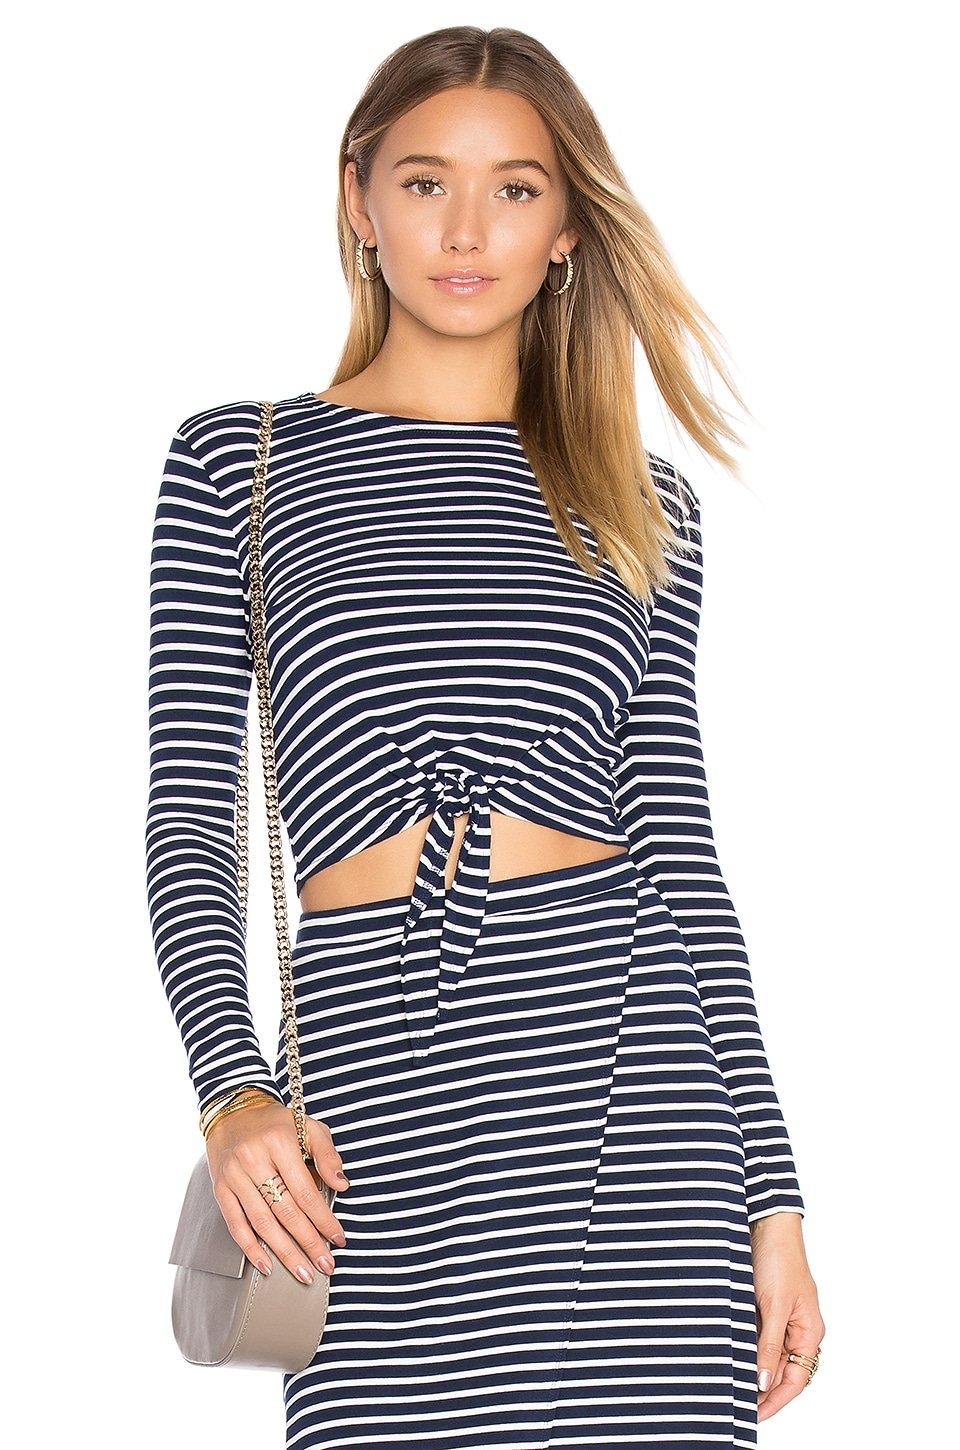 Lovers + Friends Sail Away Top in Navy Stripe